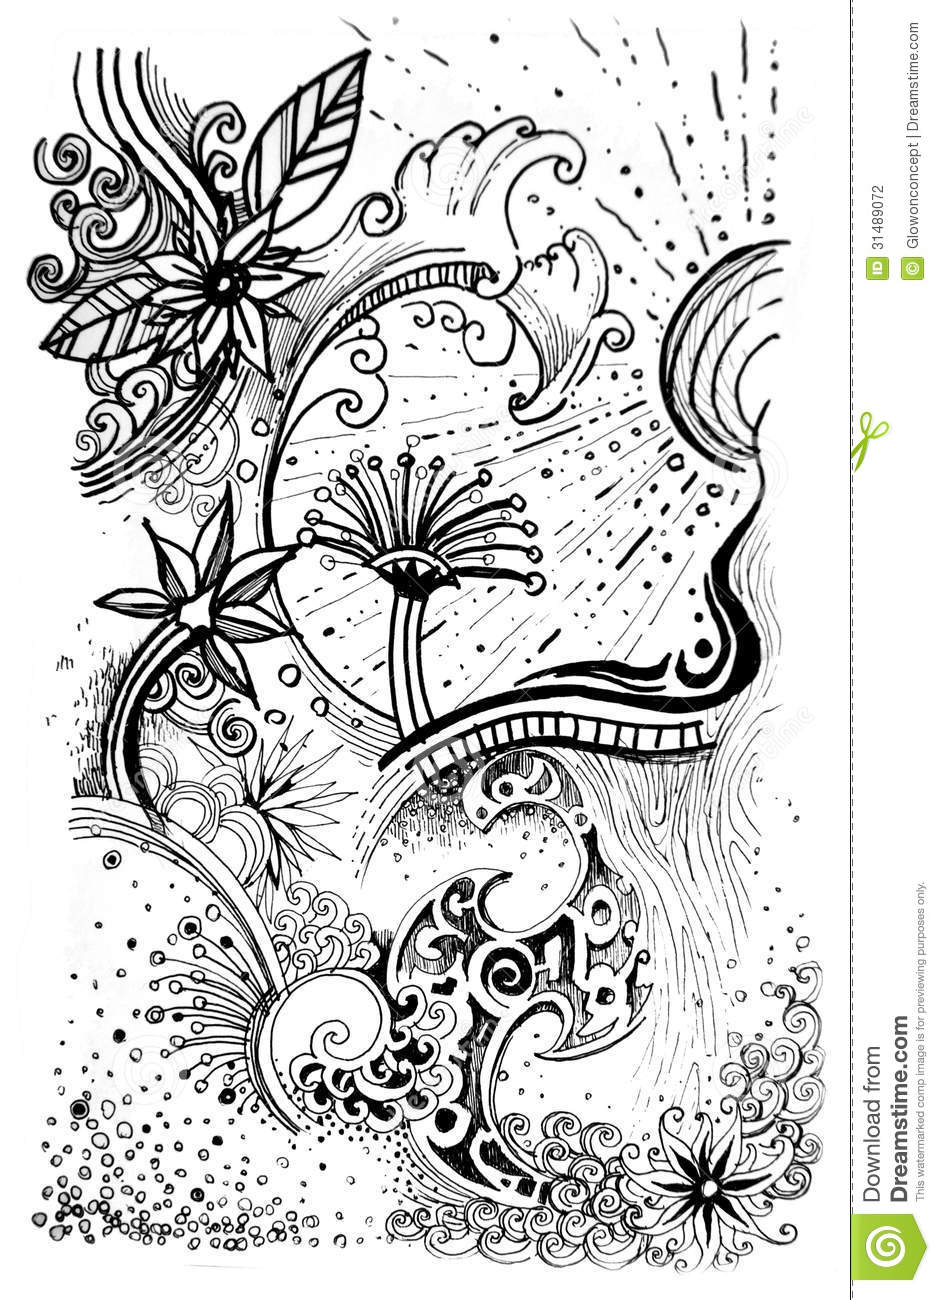 Abstract flower pattern line drawn graphic stock illustration abstract flower pattern line drawn graphic mightylinksfo Images